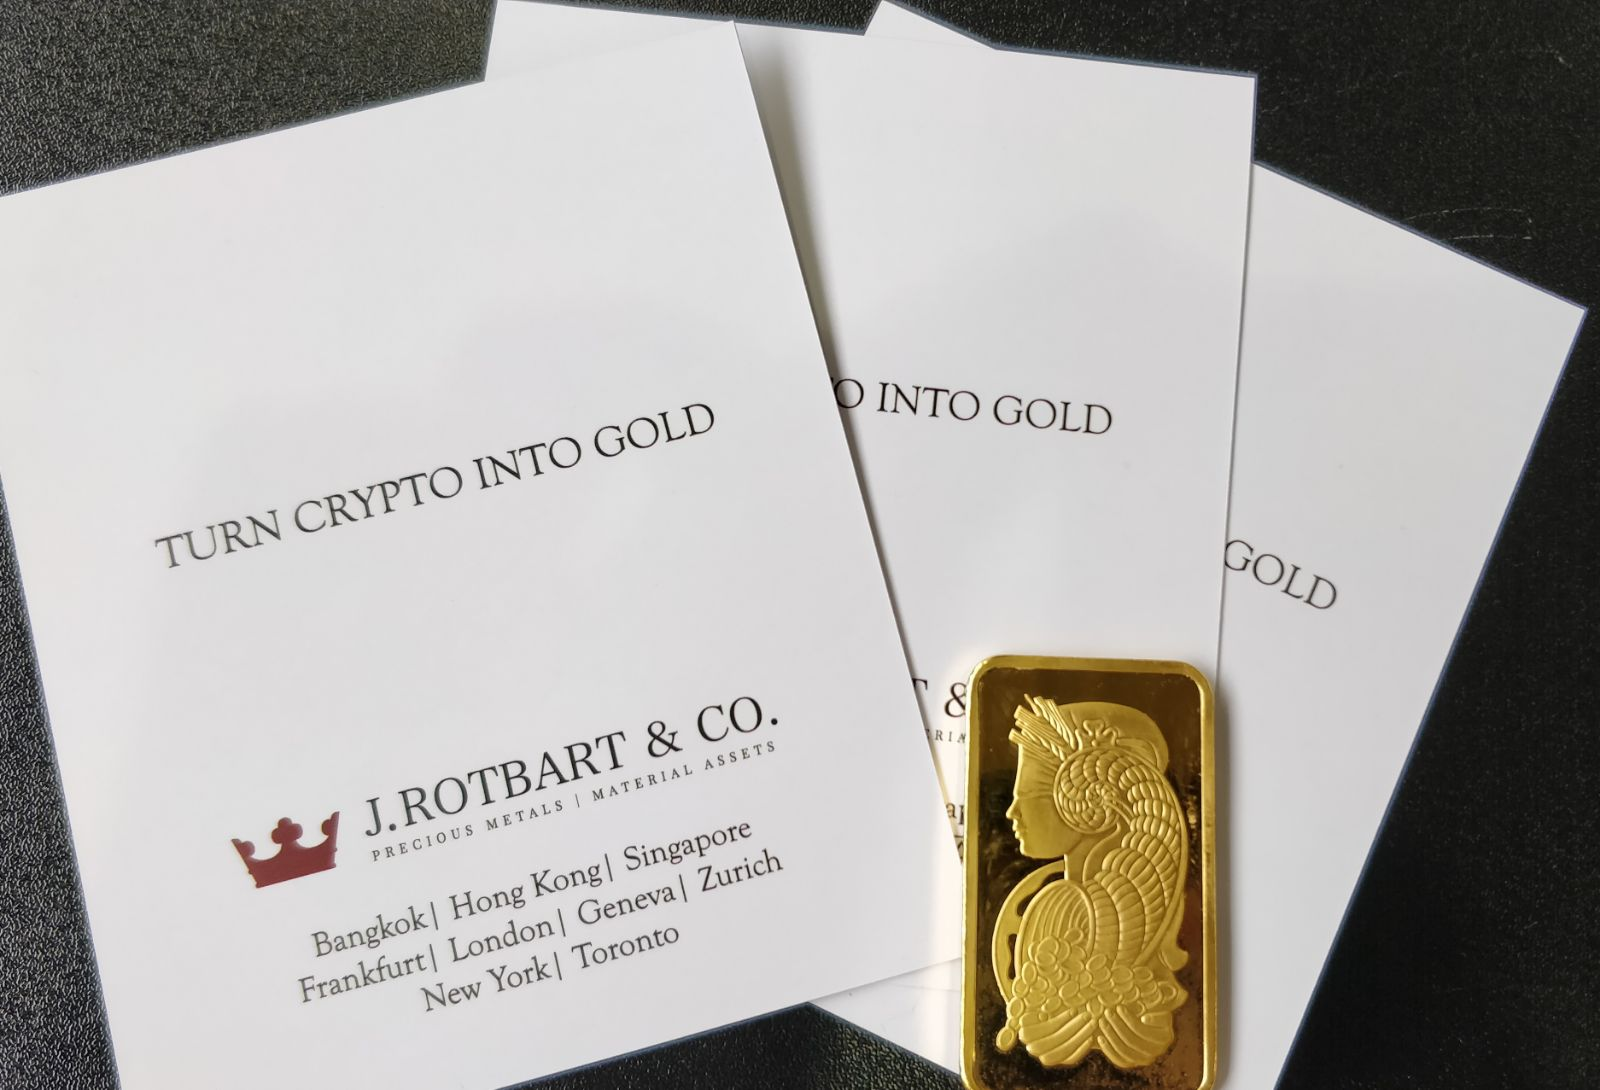 Trading Crypto, Gold and Precious Metals